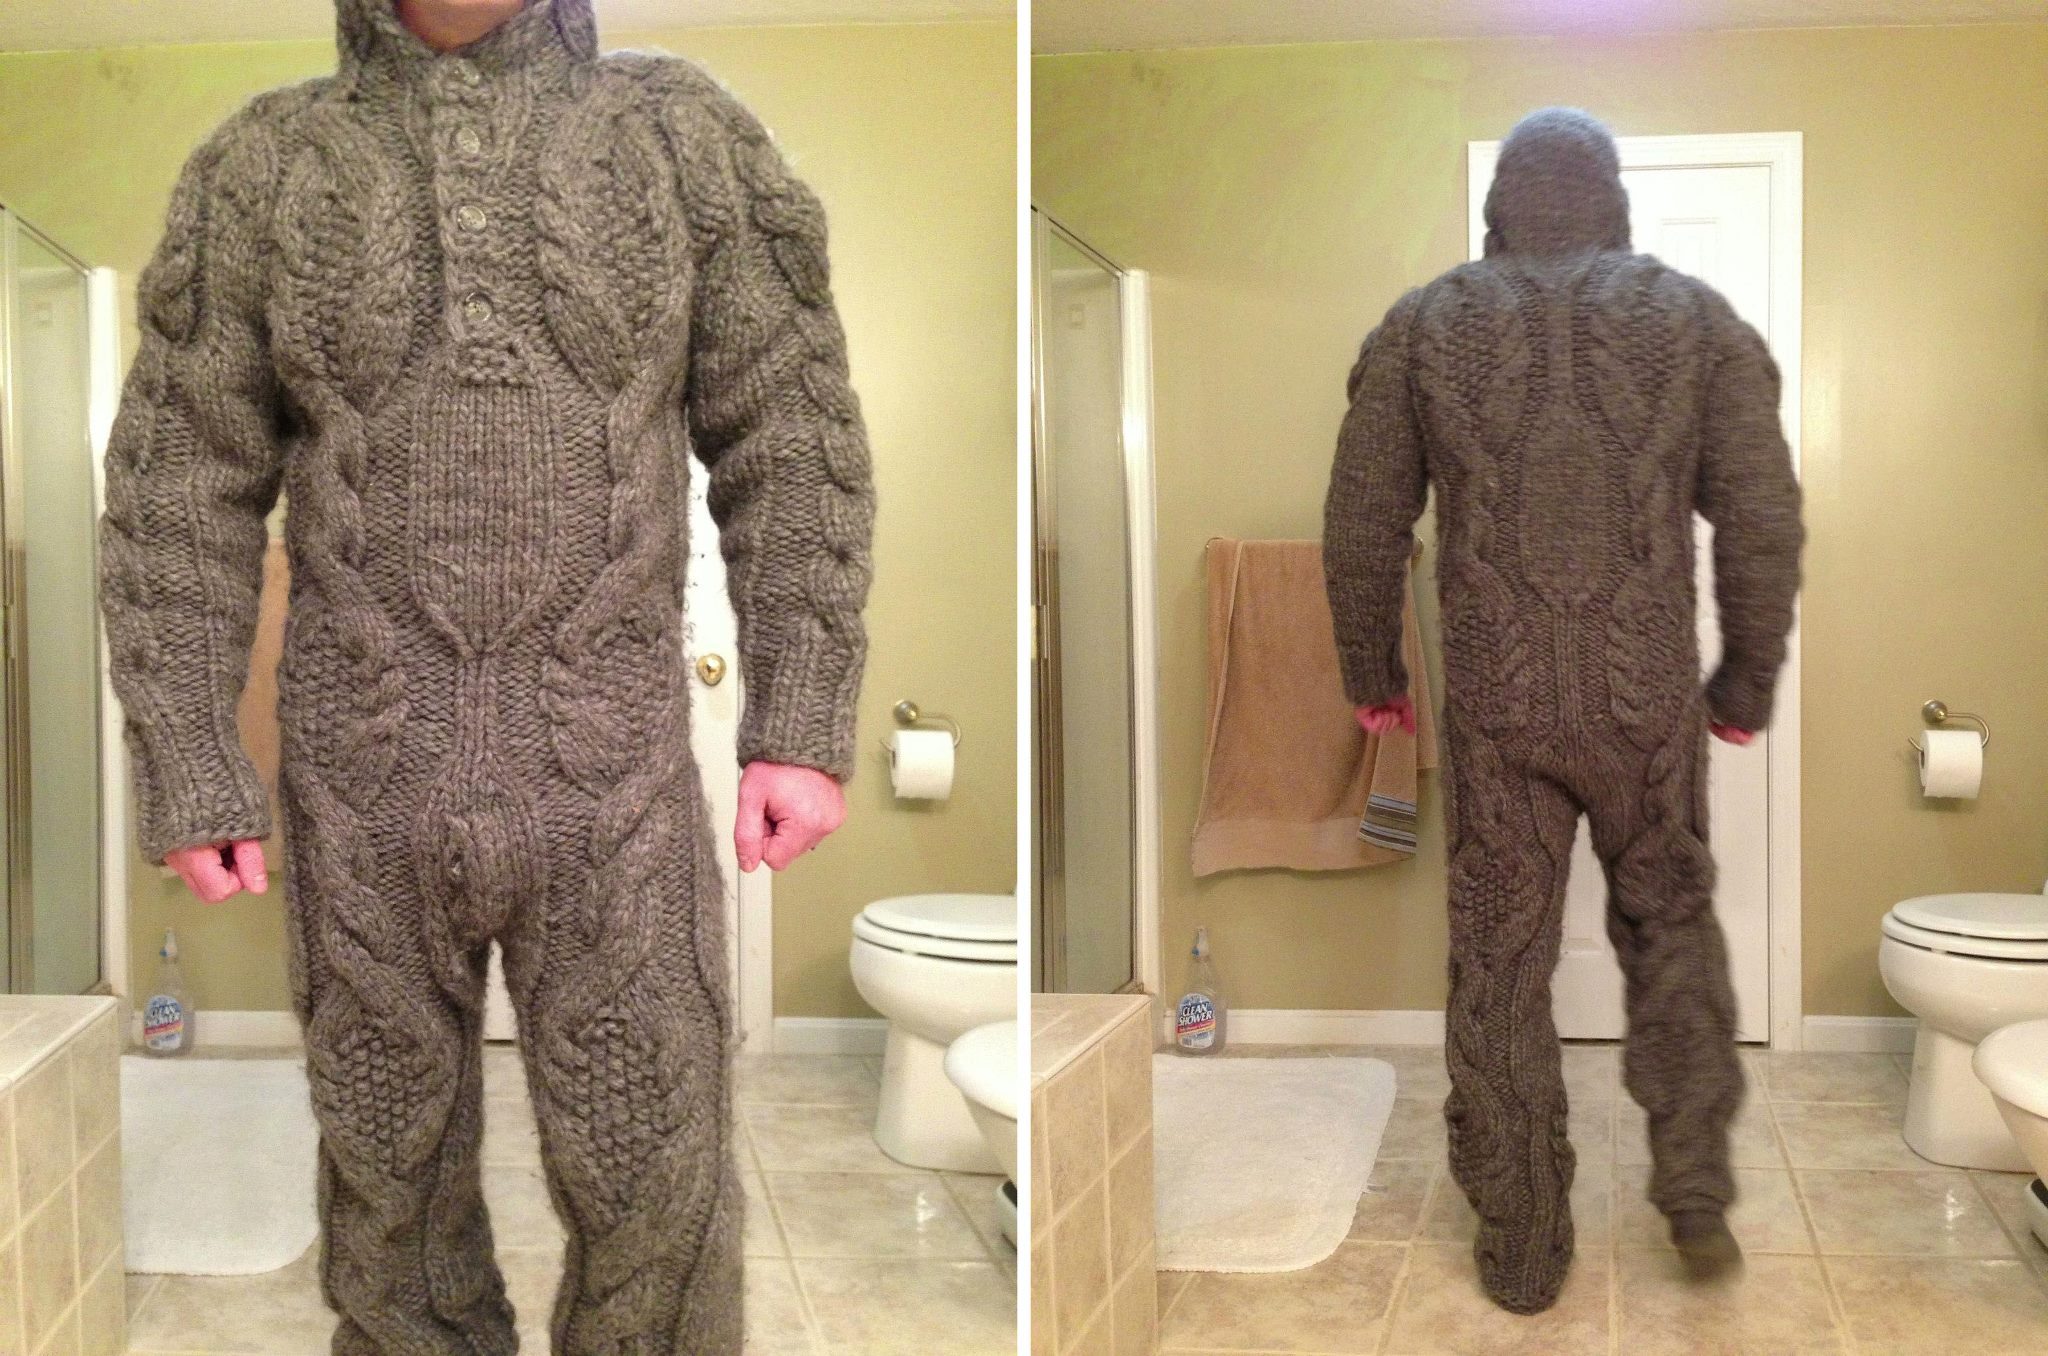 Full Body Knitted Suit